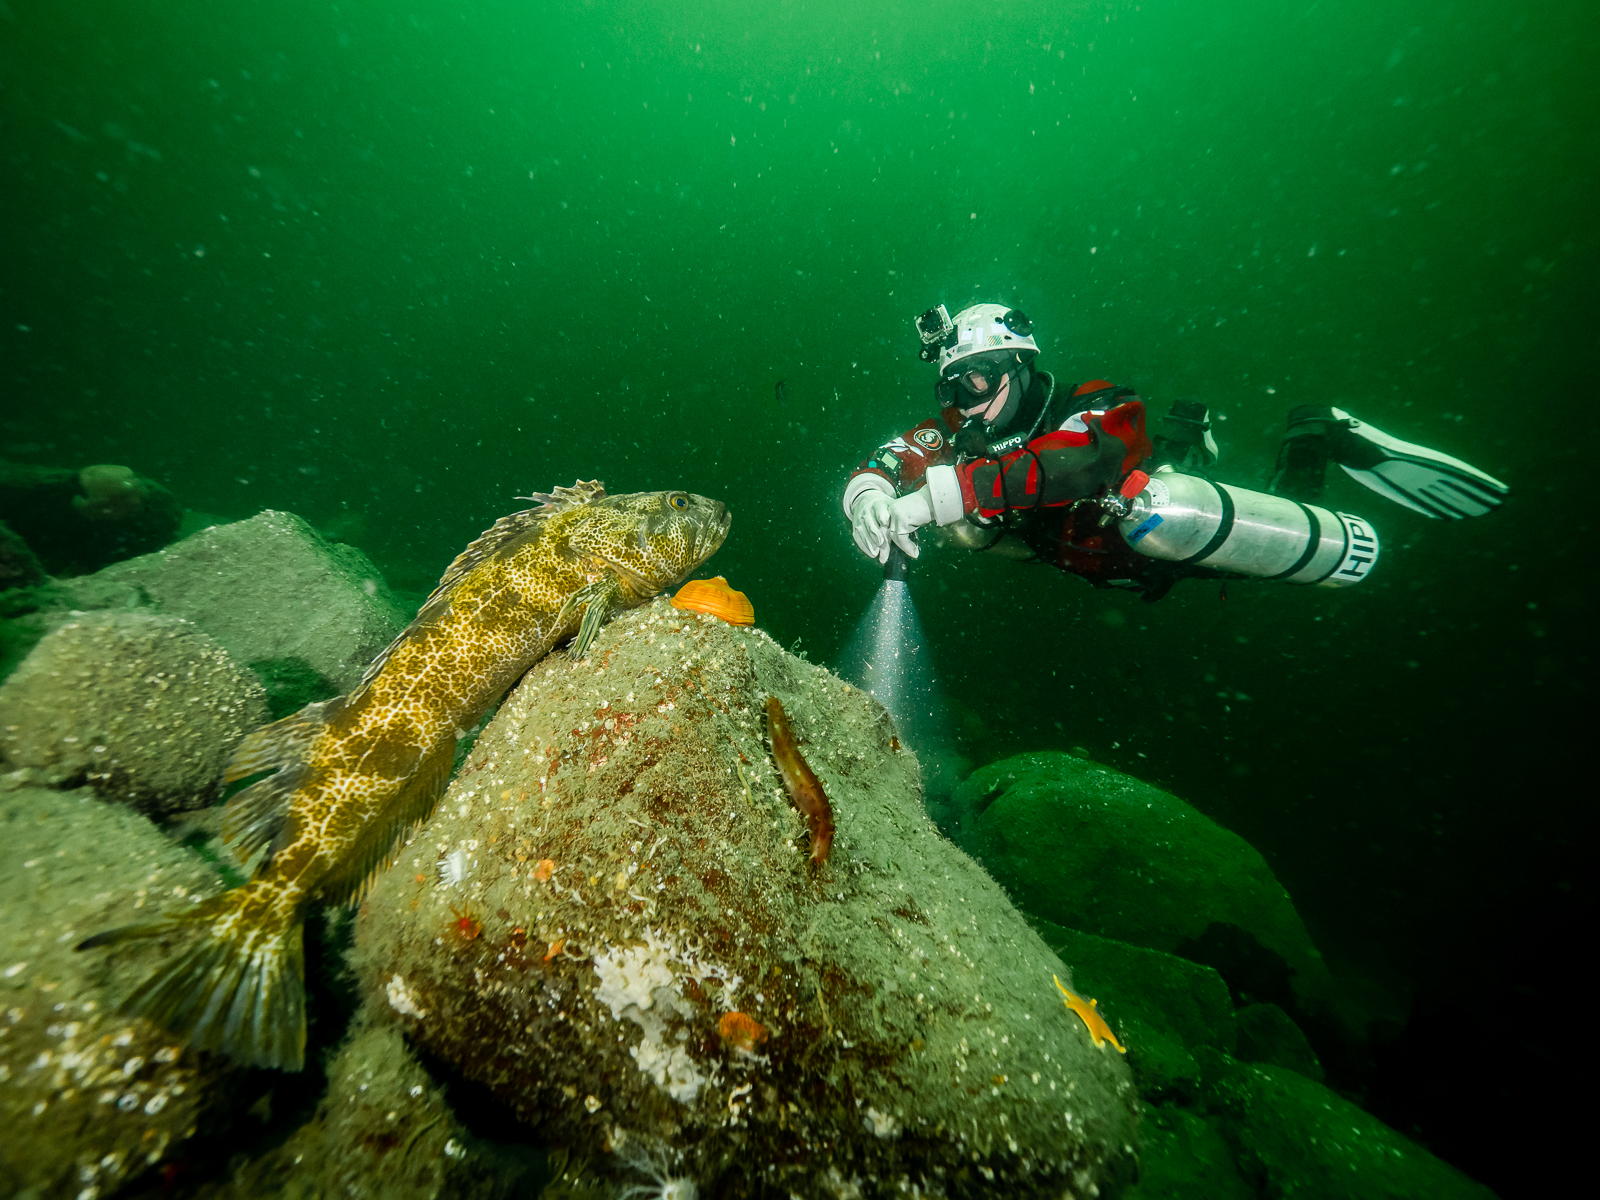 Lingcod (Ophiodon elongatuscan) can grow as large as 1.5 meters. At a depth of twenty meters, a diver goes meets a large lingcod face to face. Sechelt Inlets Marine Provincial Park.